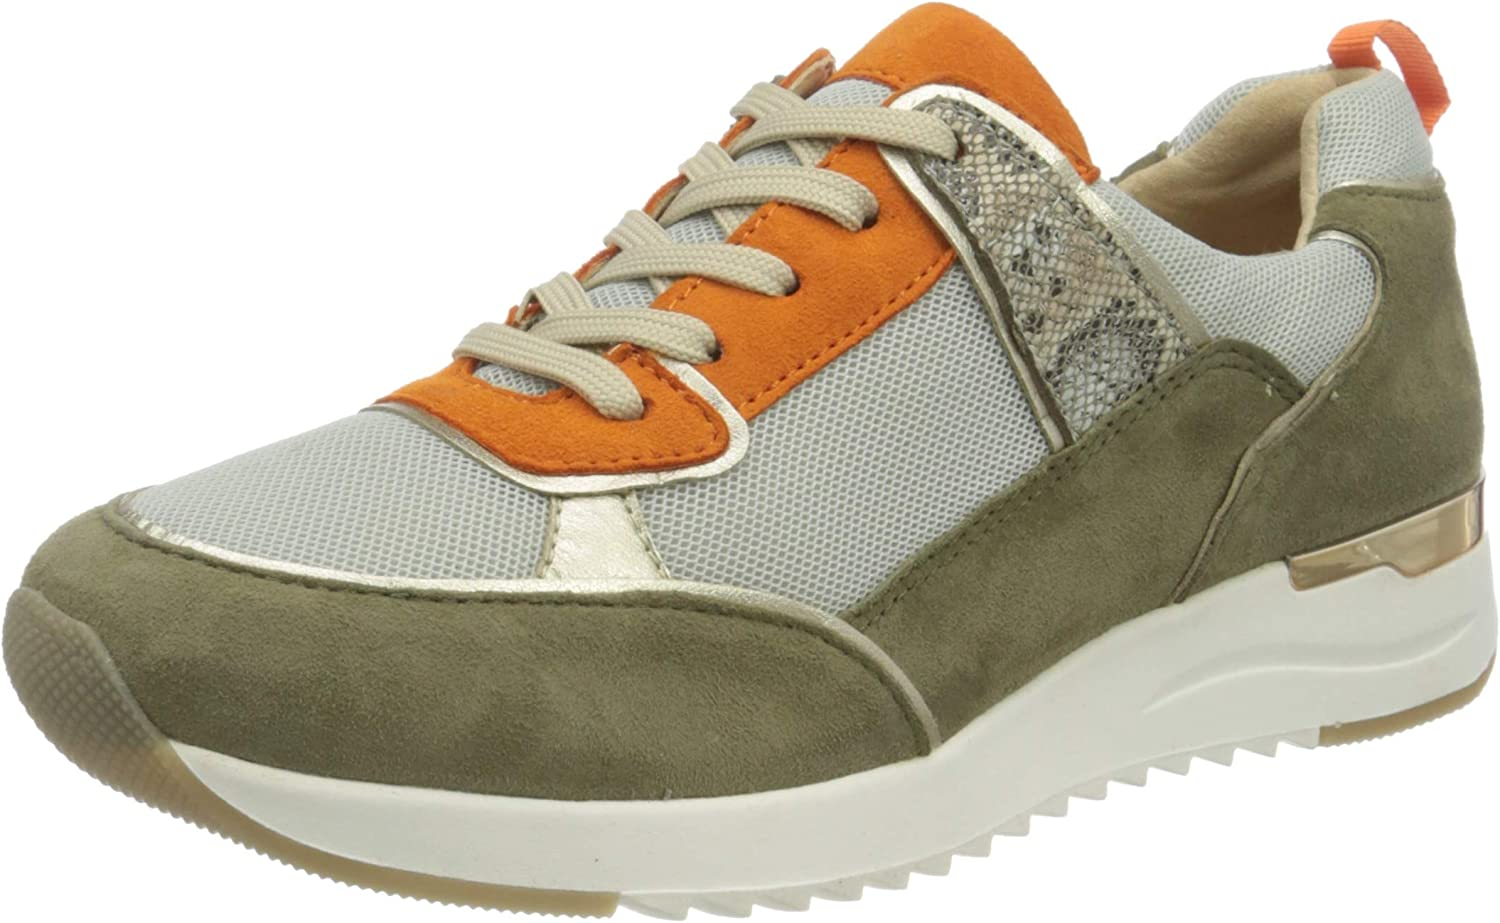 Caprice Selling Weekly update and selling 23706-770 Cactus Combi Leather Trainers 7 Womens Up Lace